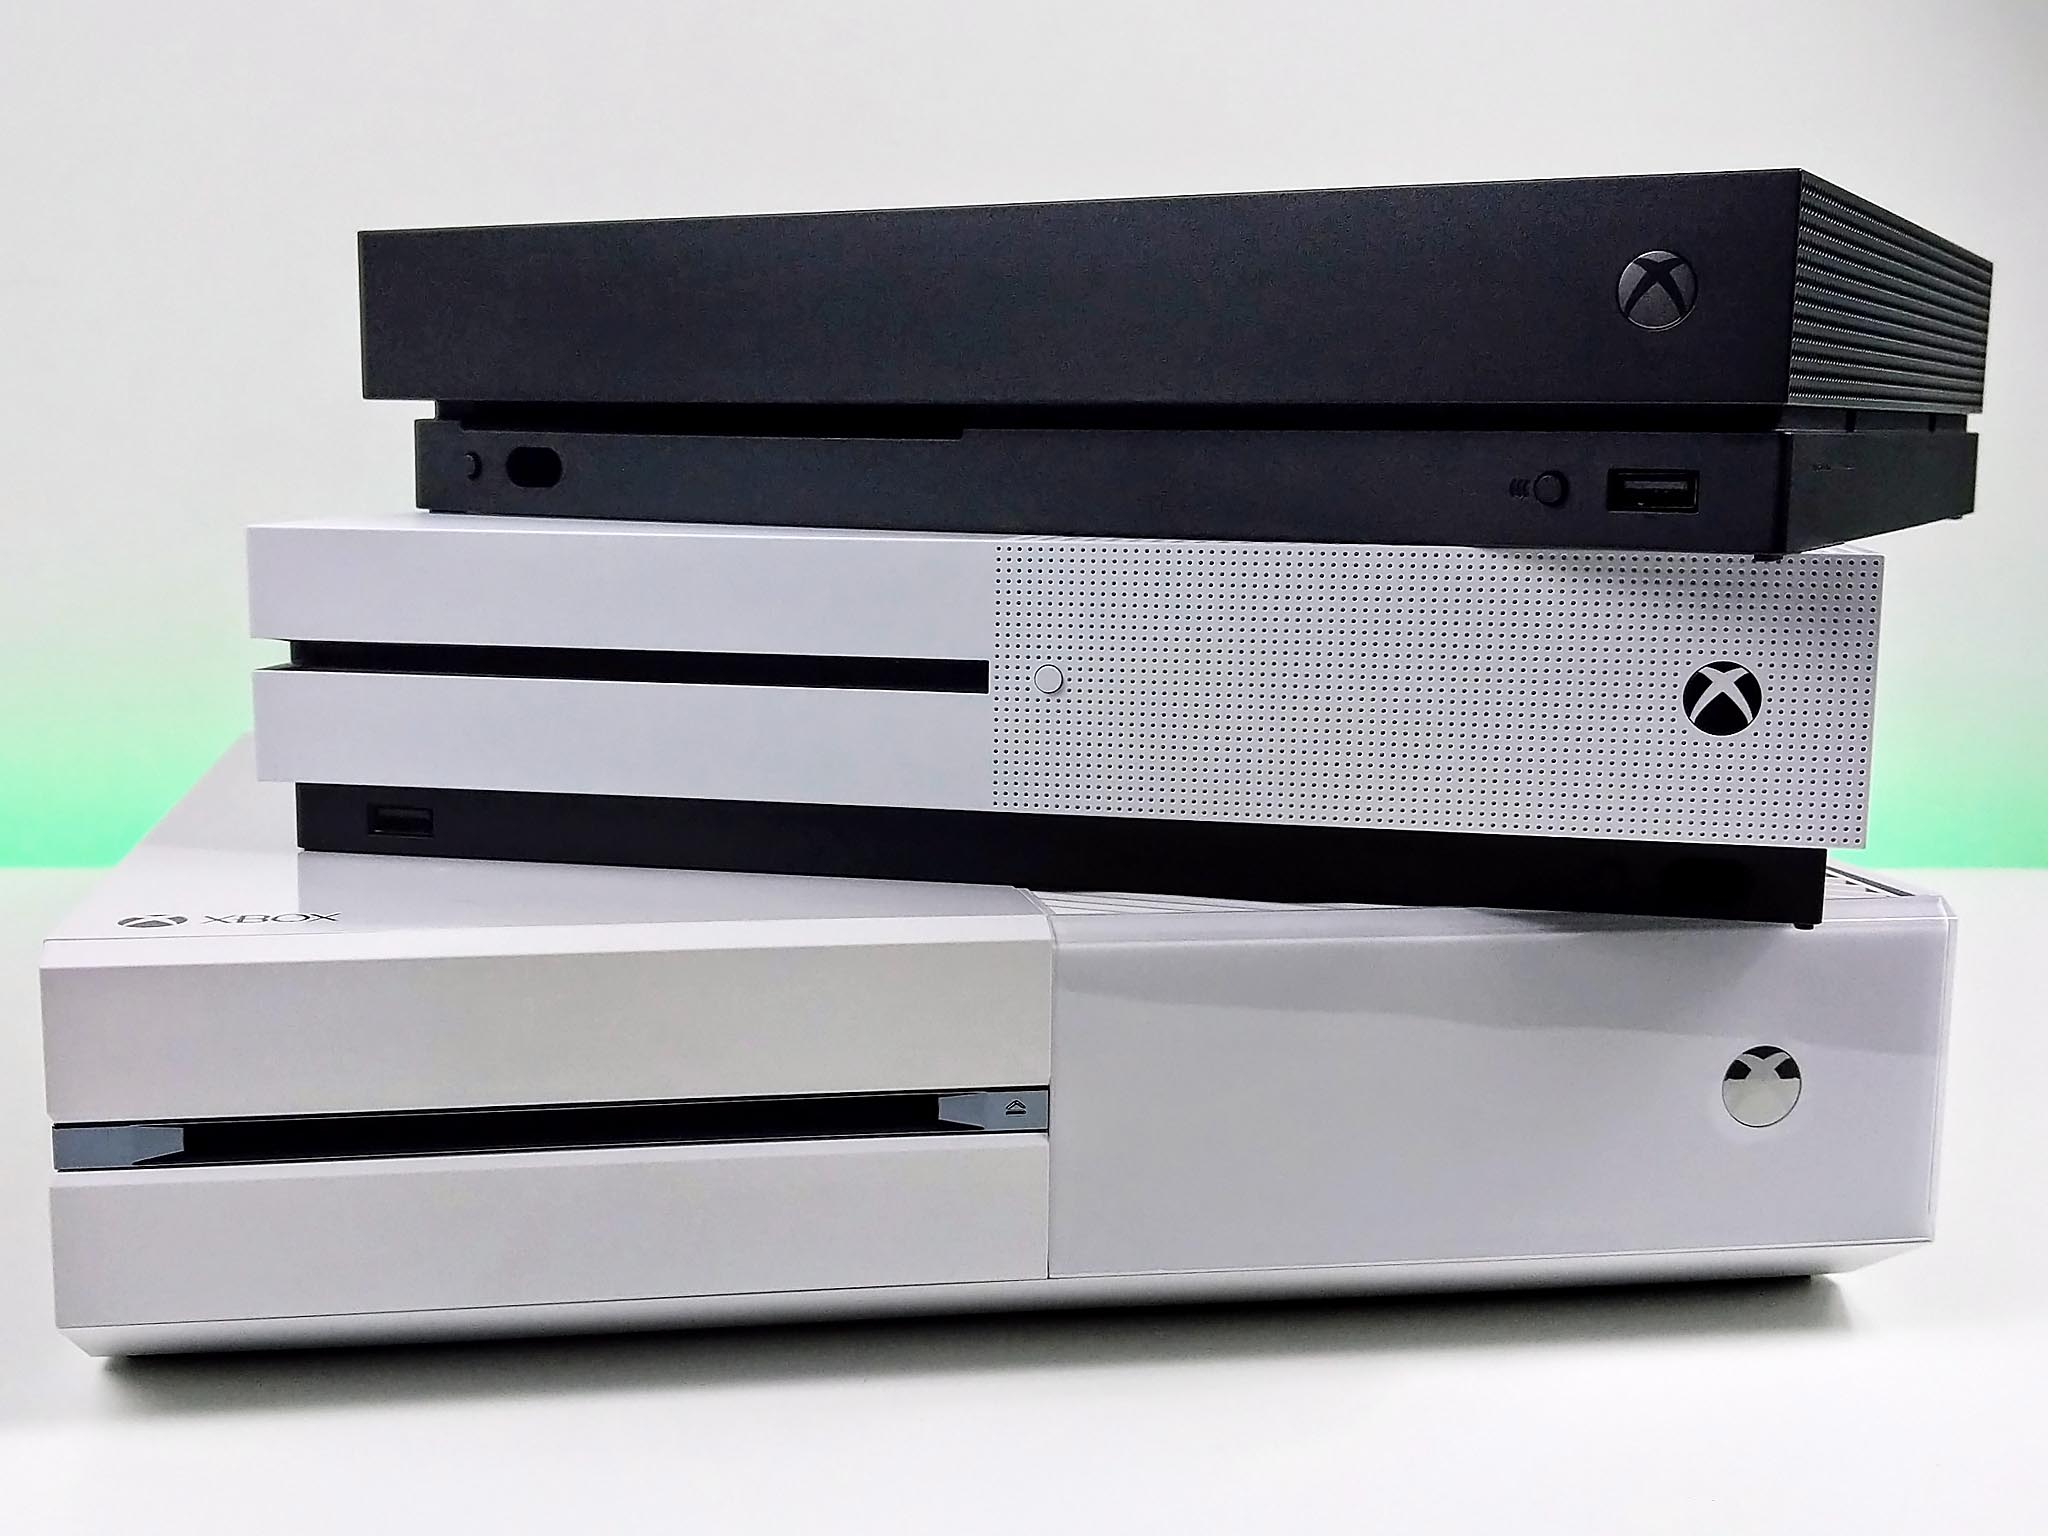 medium resolution of speaking of cooling the xbox one x is never blisteringly hot to the touch when